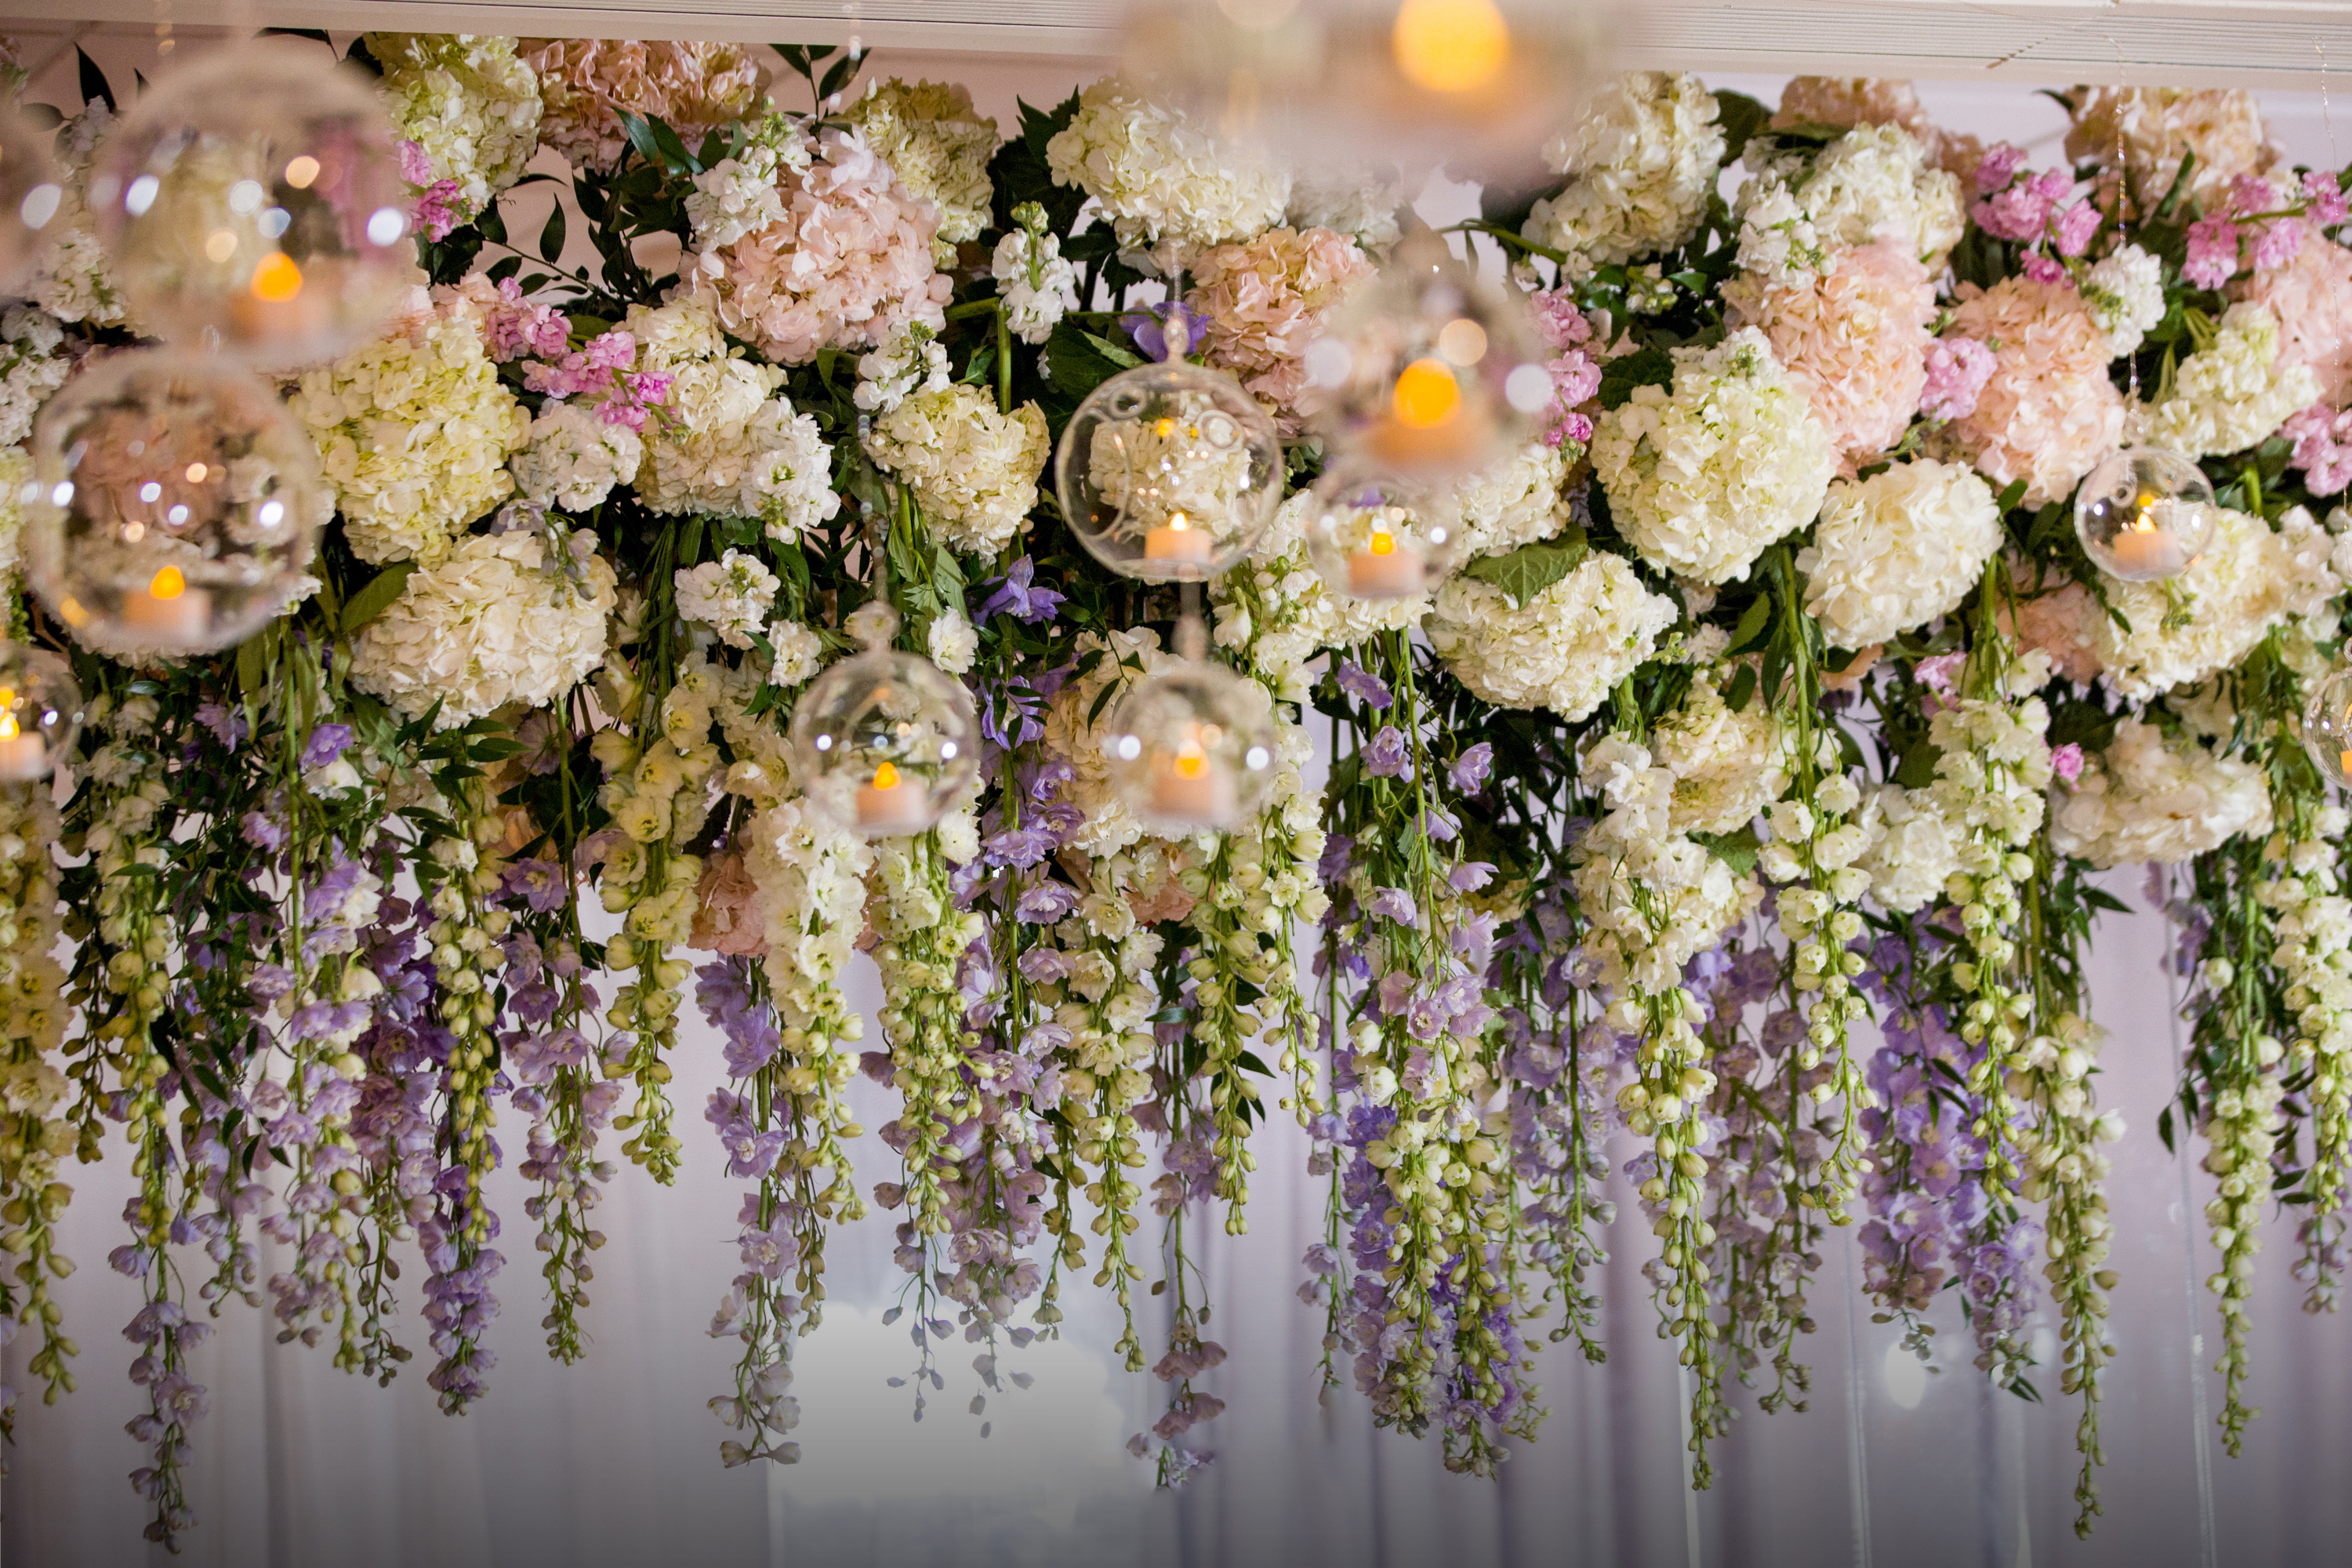 6 Benefits to DIY Wedding Flowers Over Traditional Florists